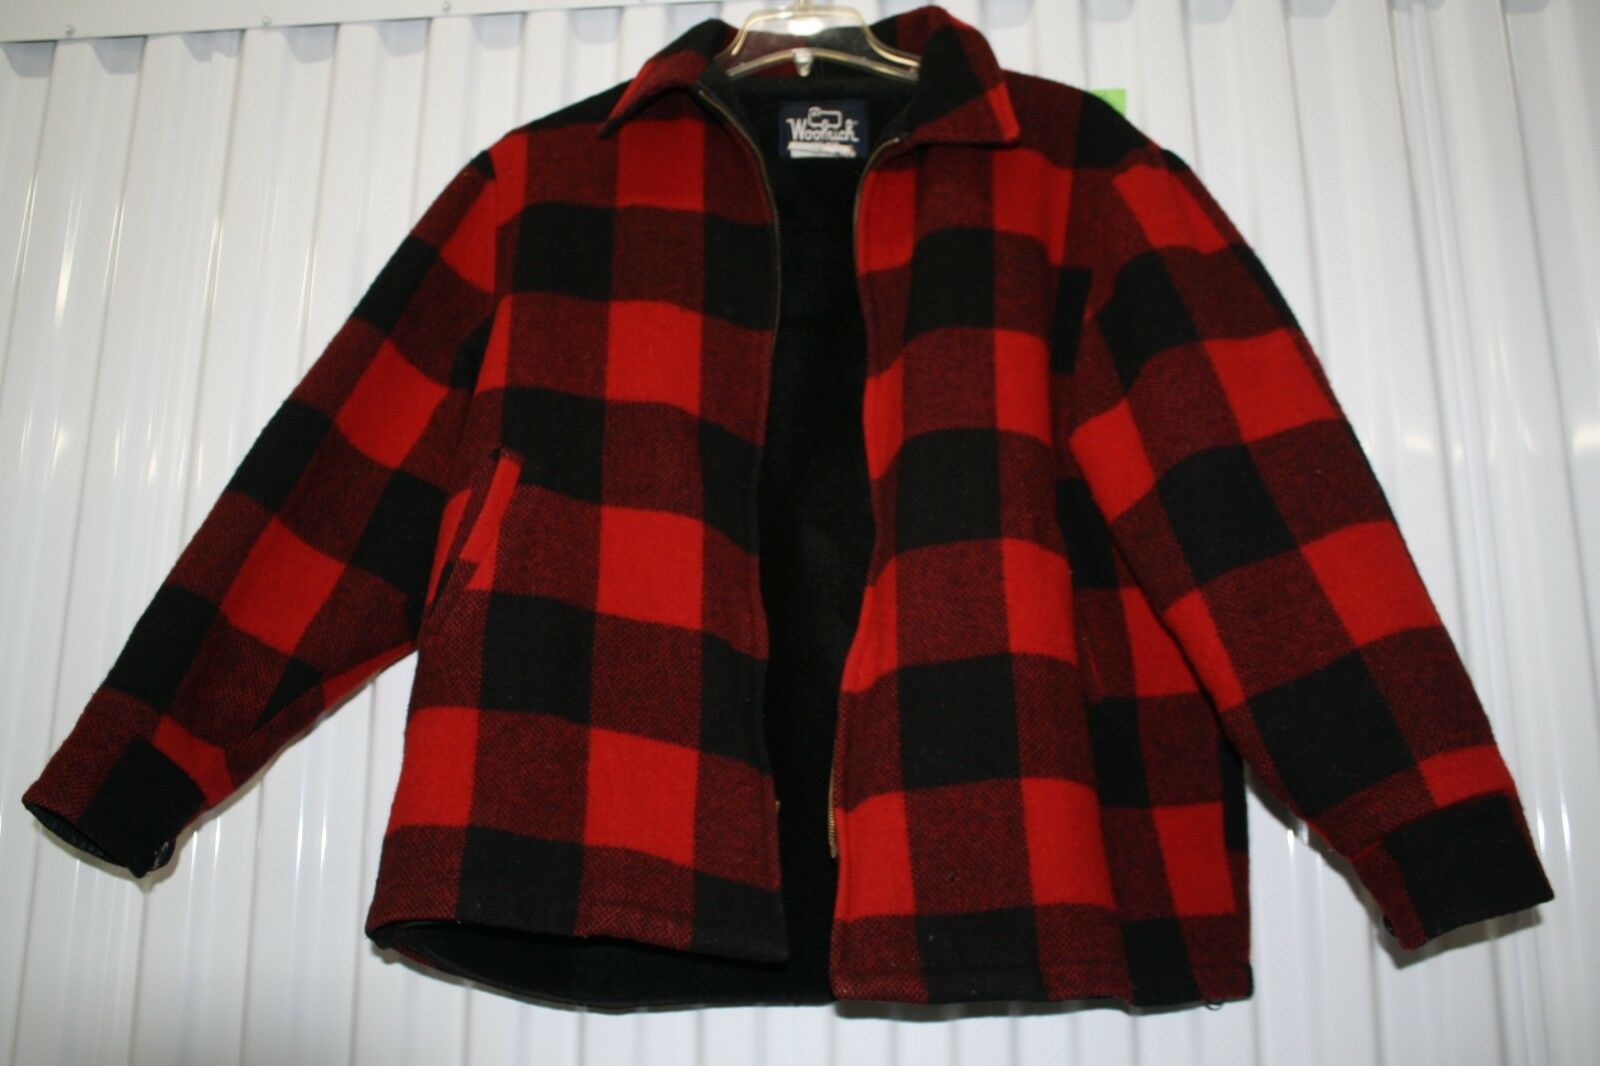 Vintage Woolrich 16010 Coat. Made in USA. SIZE XL